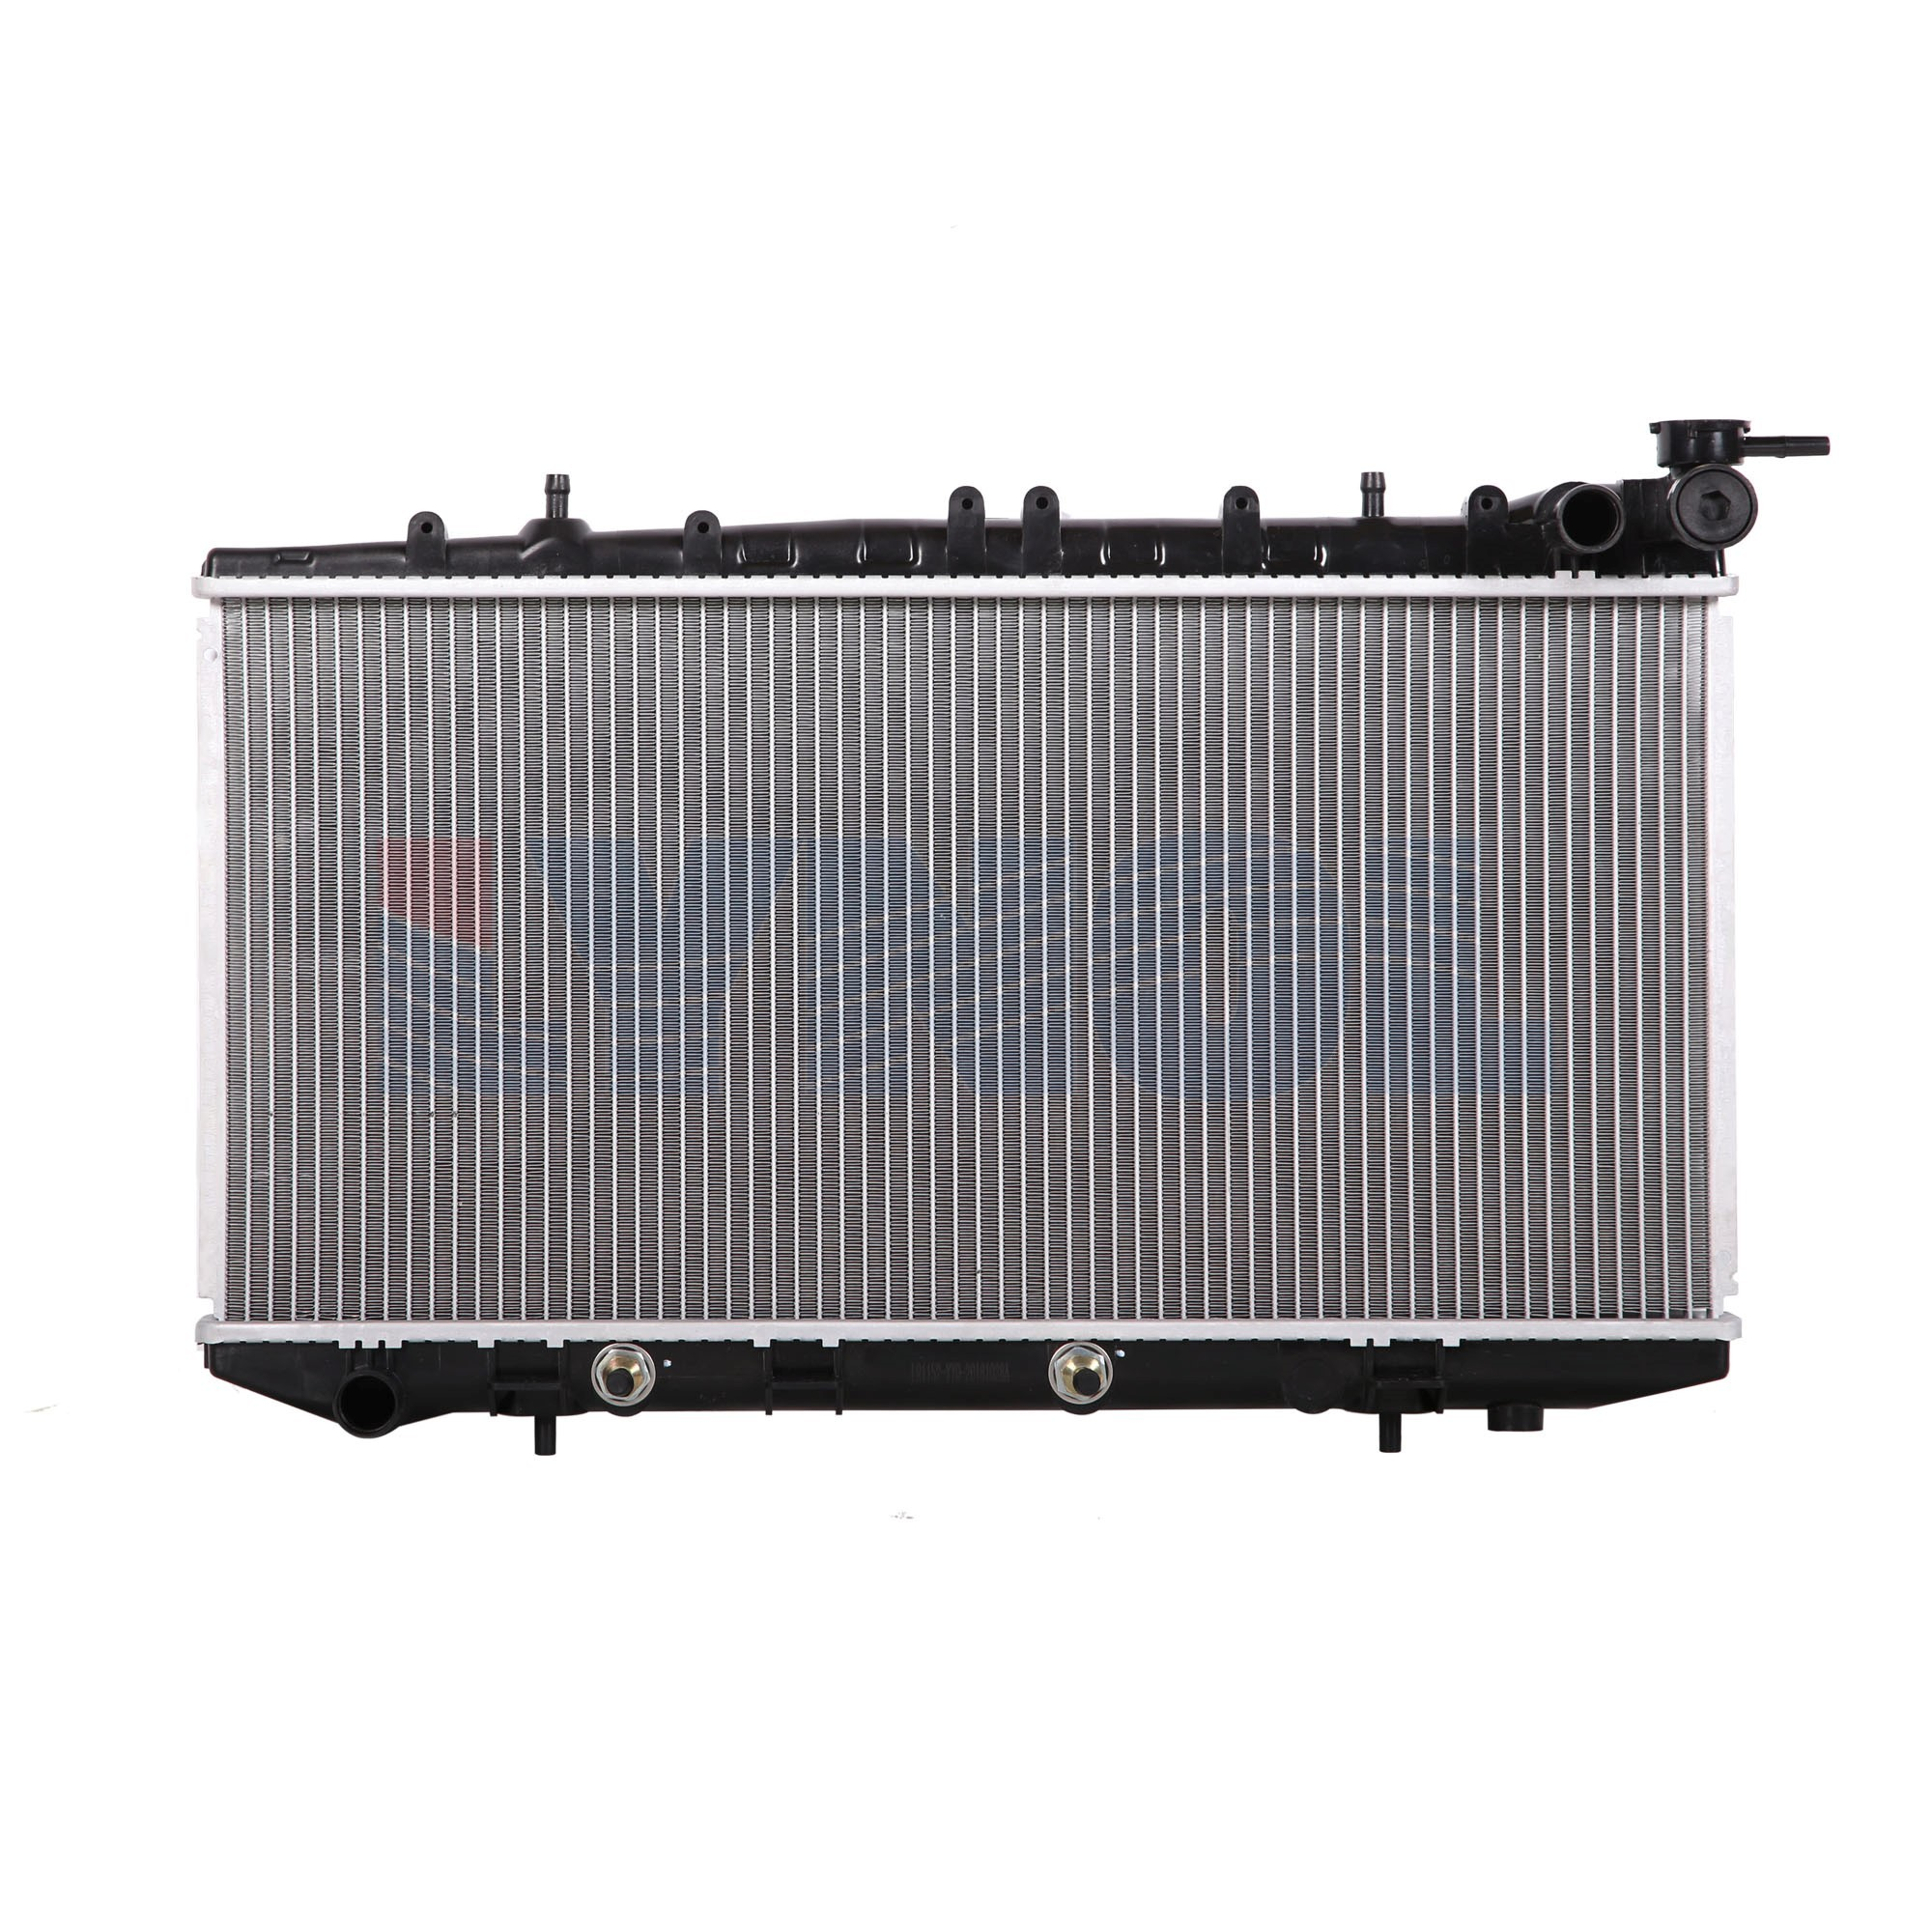 LR1152 - RADIATOR  - 91-99 Nissan Sentra/ 200SX/ NX (AS 1178)